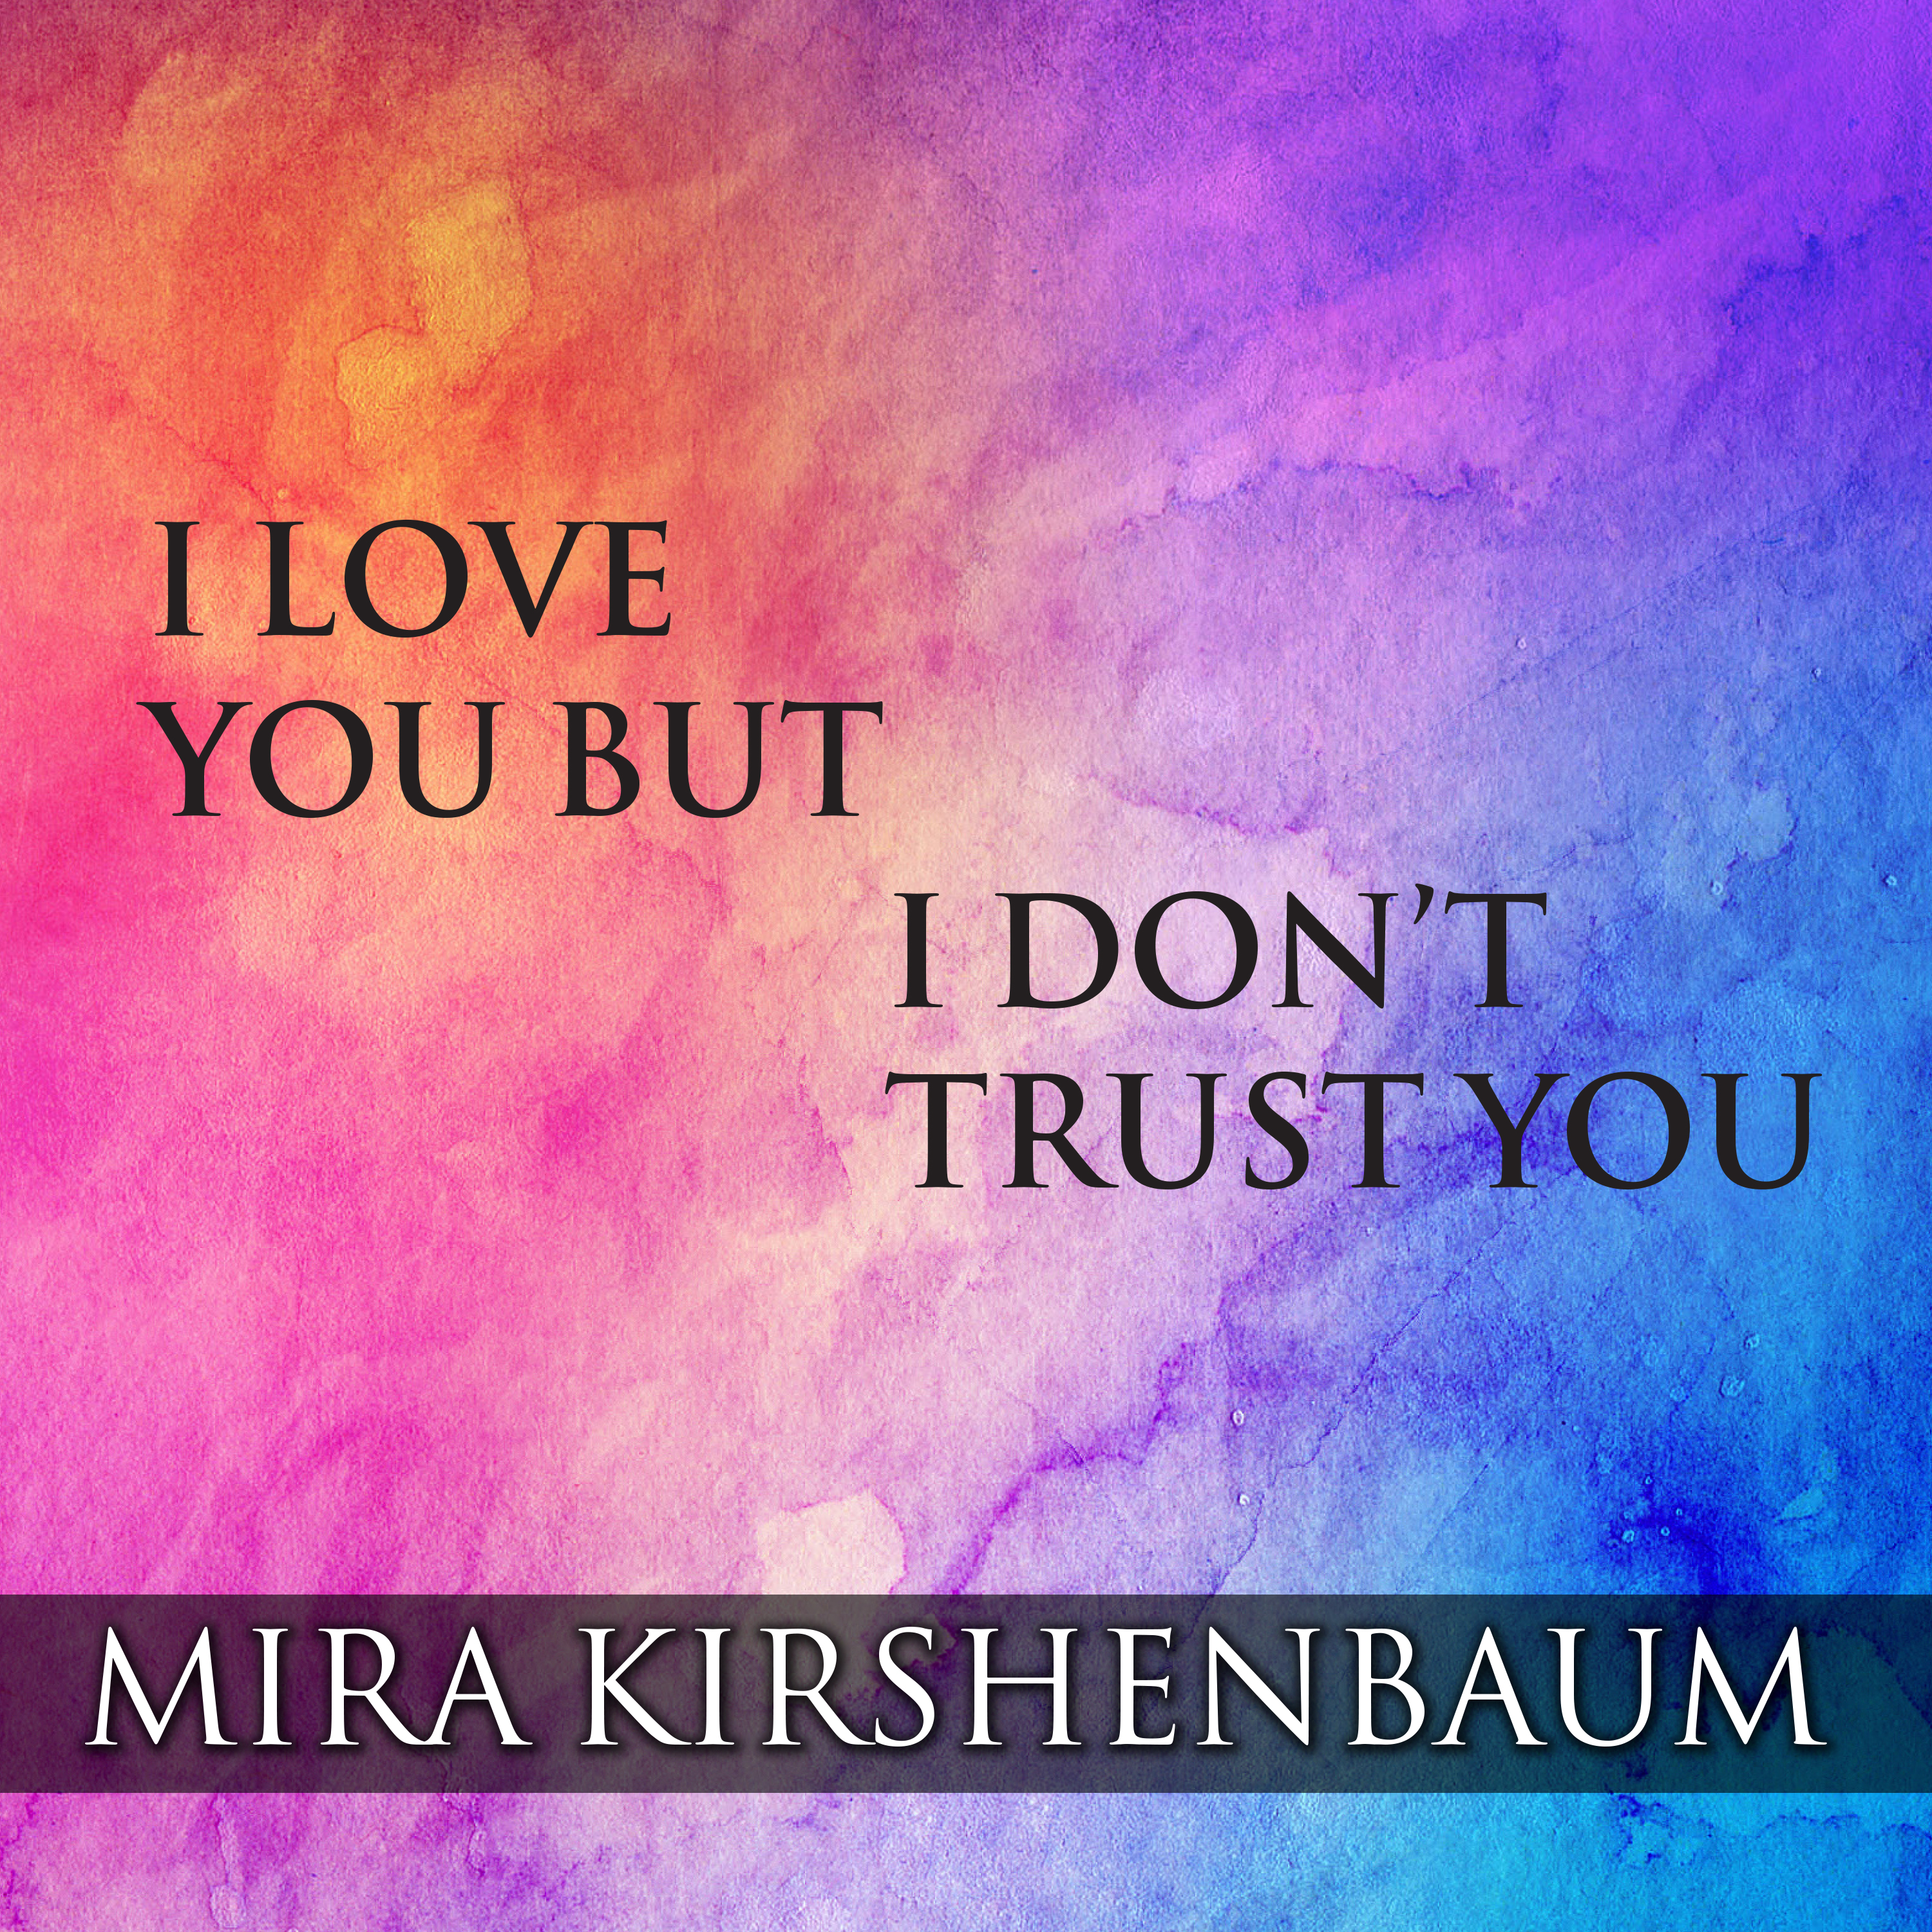 Printable I Love You But I Don't Trust You: The Complete Guide to Restoring Trust in Your Relationship Audiobook Cover Art